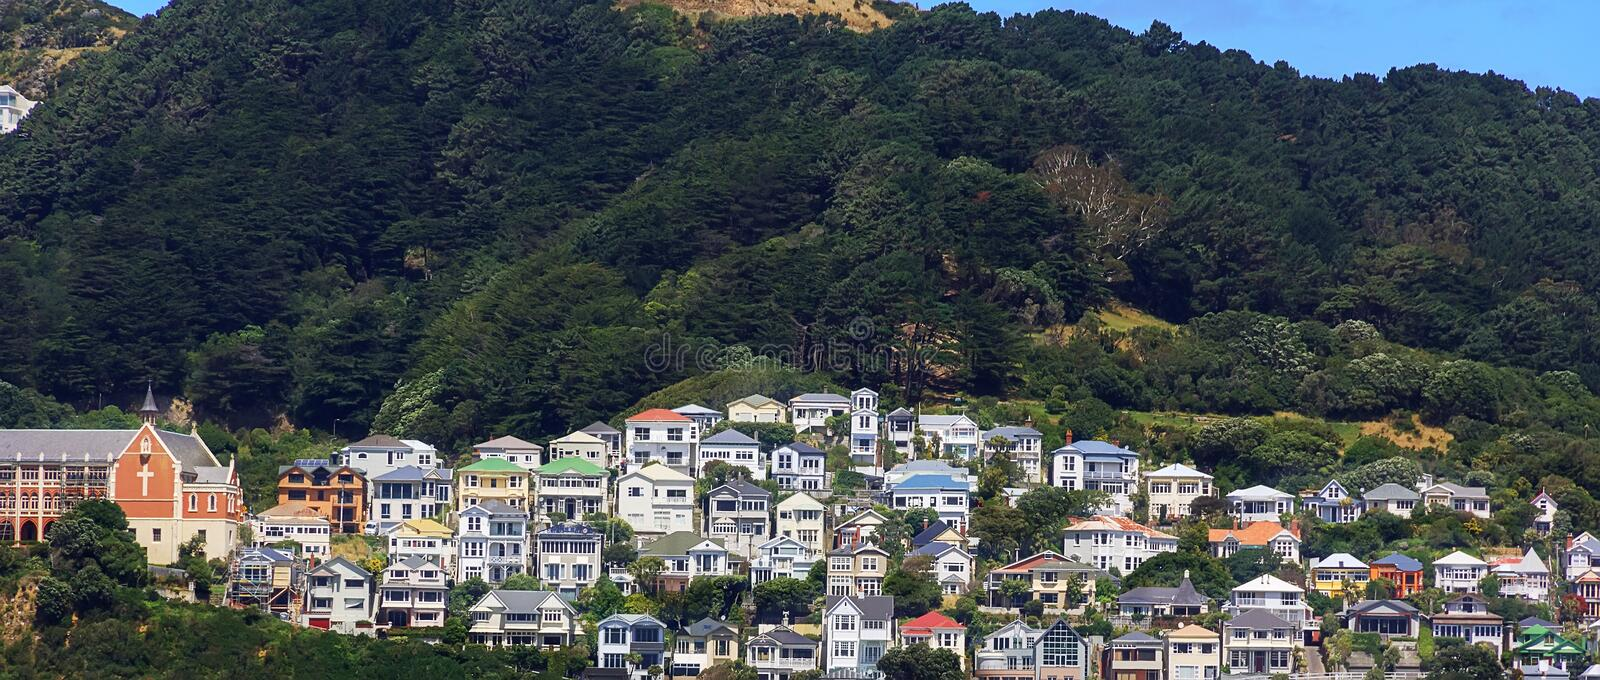 Colorful houses on Mount Victoria in Wellington, New Zealand. Colorful houses at residential area on Mount Victoria in Wellington, New Zealand royalty free stock photography